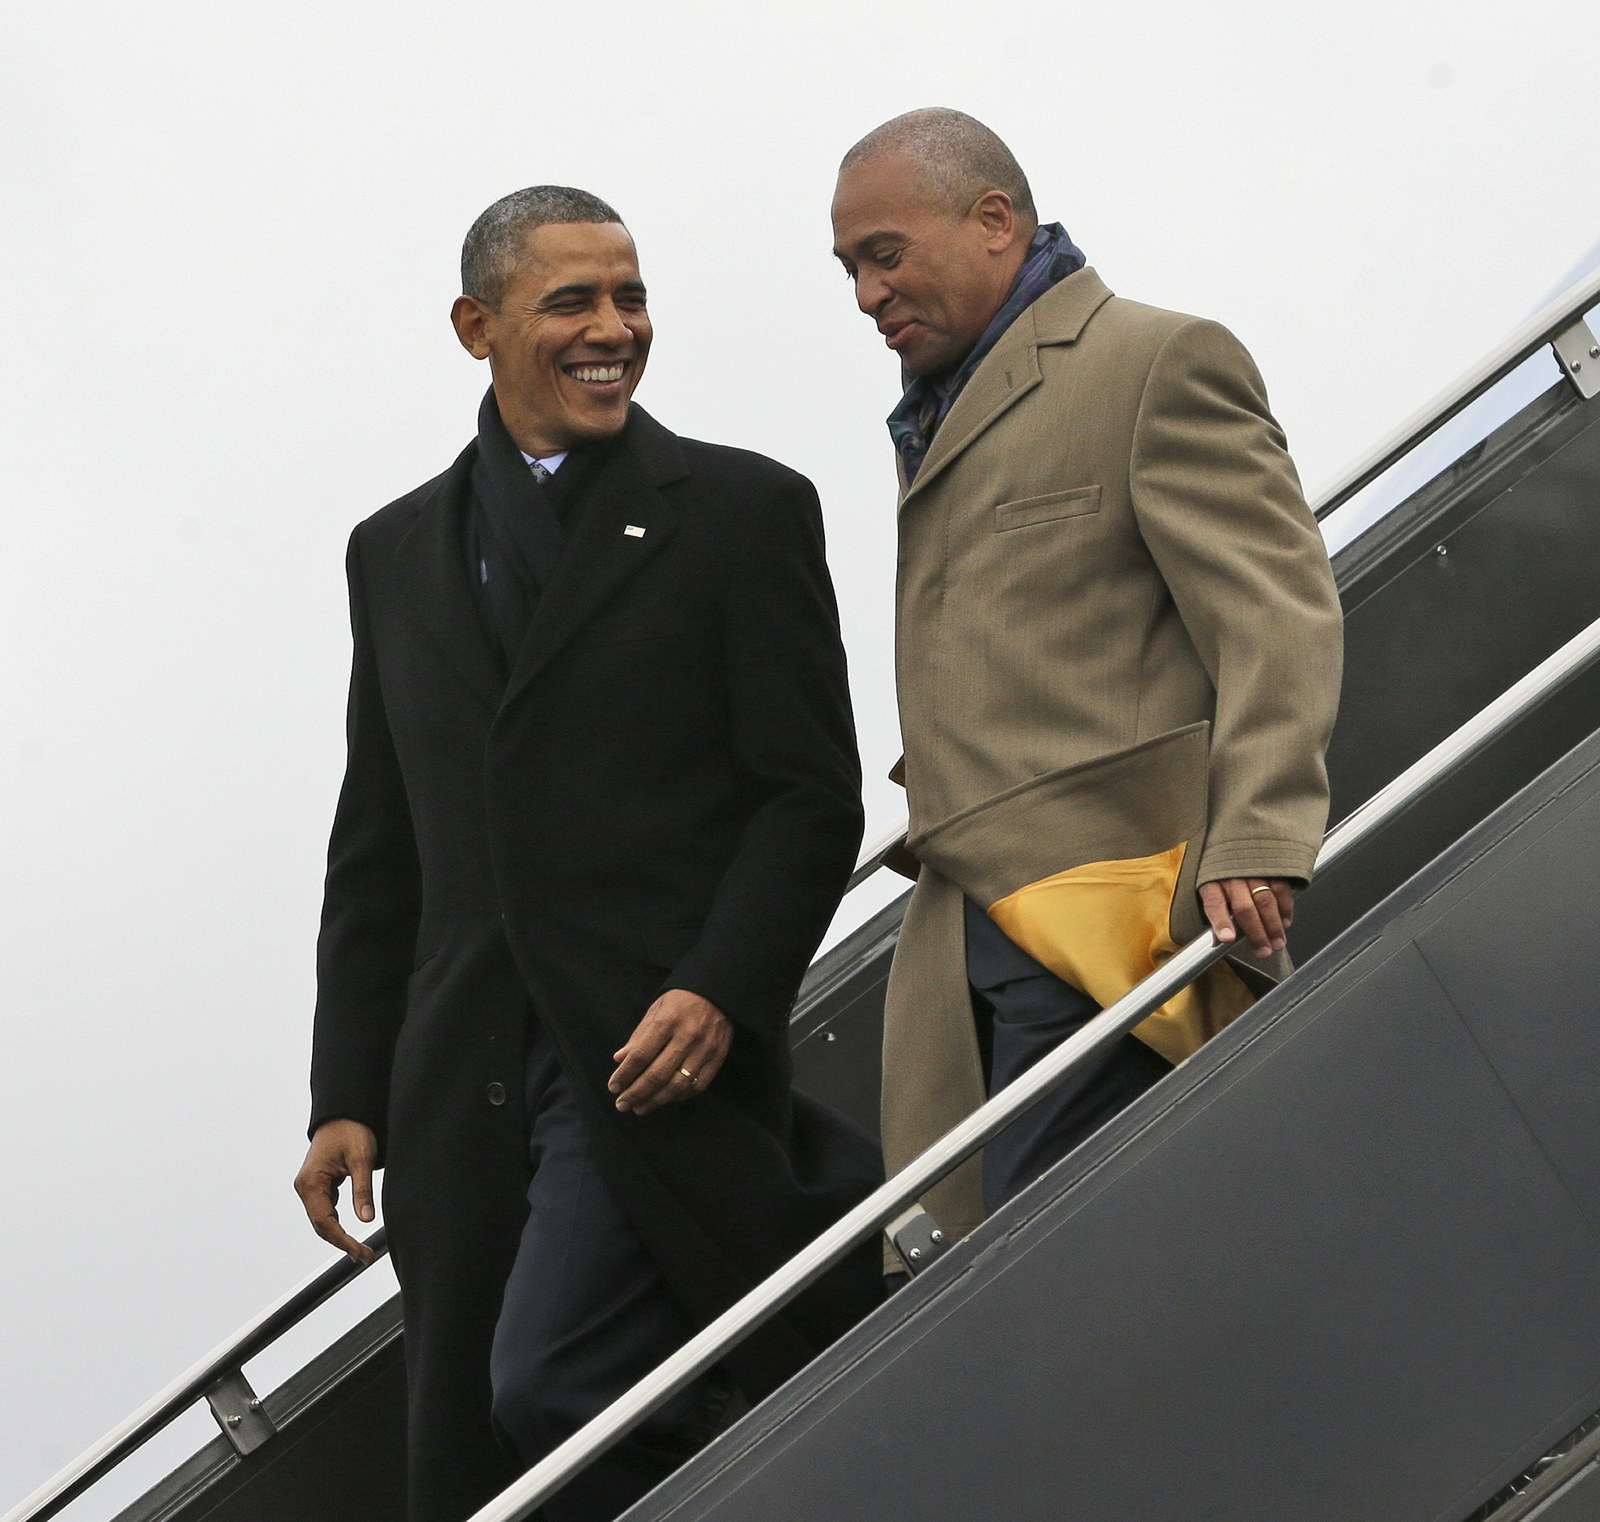 Barack Obama leaving Air Force One with Patrick, March 5, 2014.